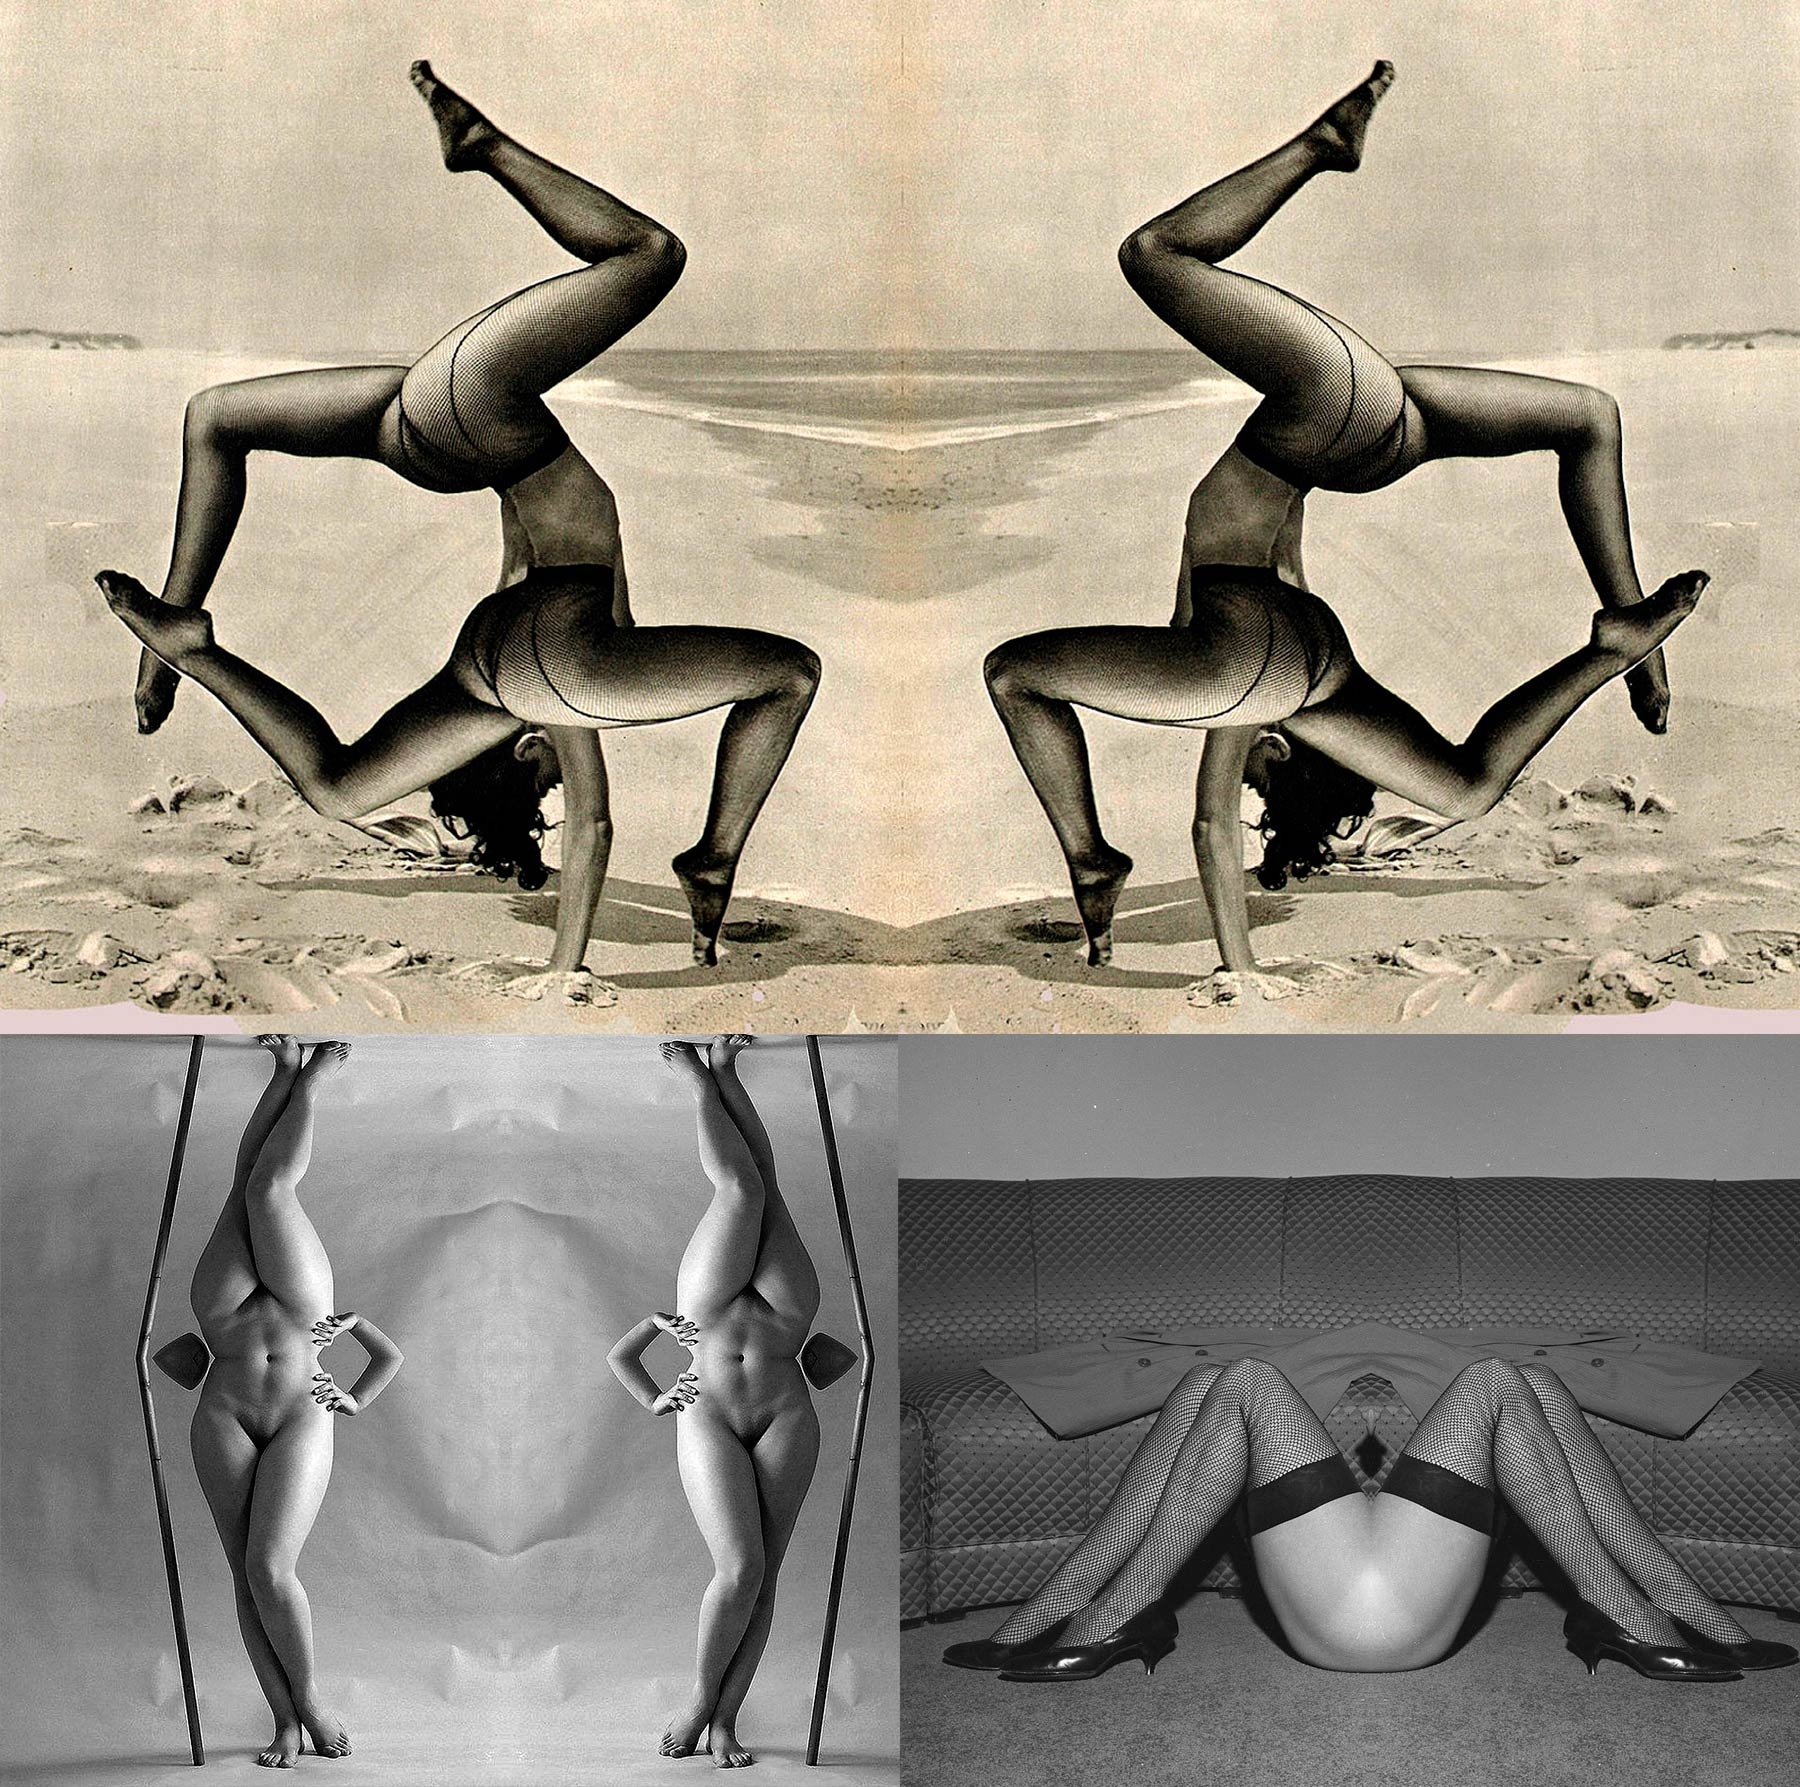 A series of retouched pictures. These are old photos of naked or half-naked women, fold and mirrored to create strange human bodies.